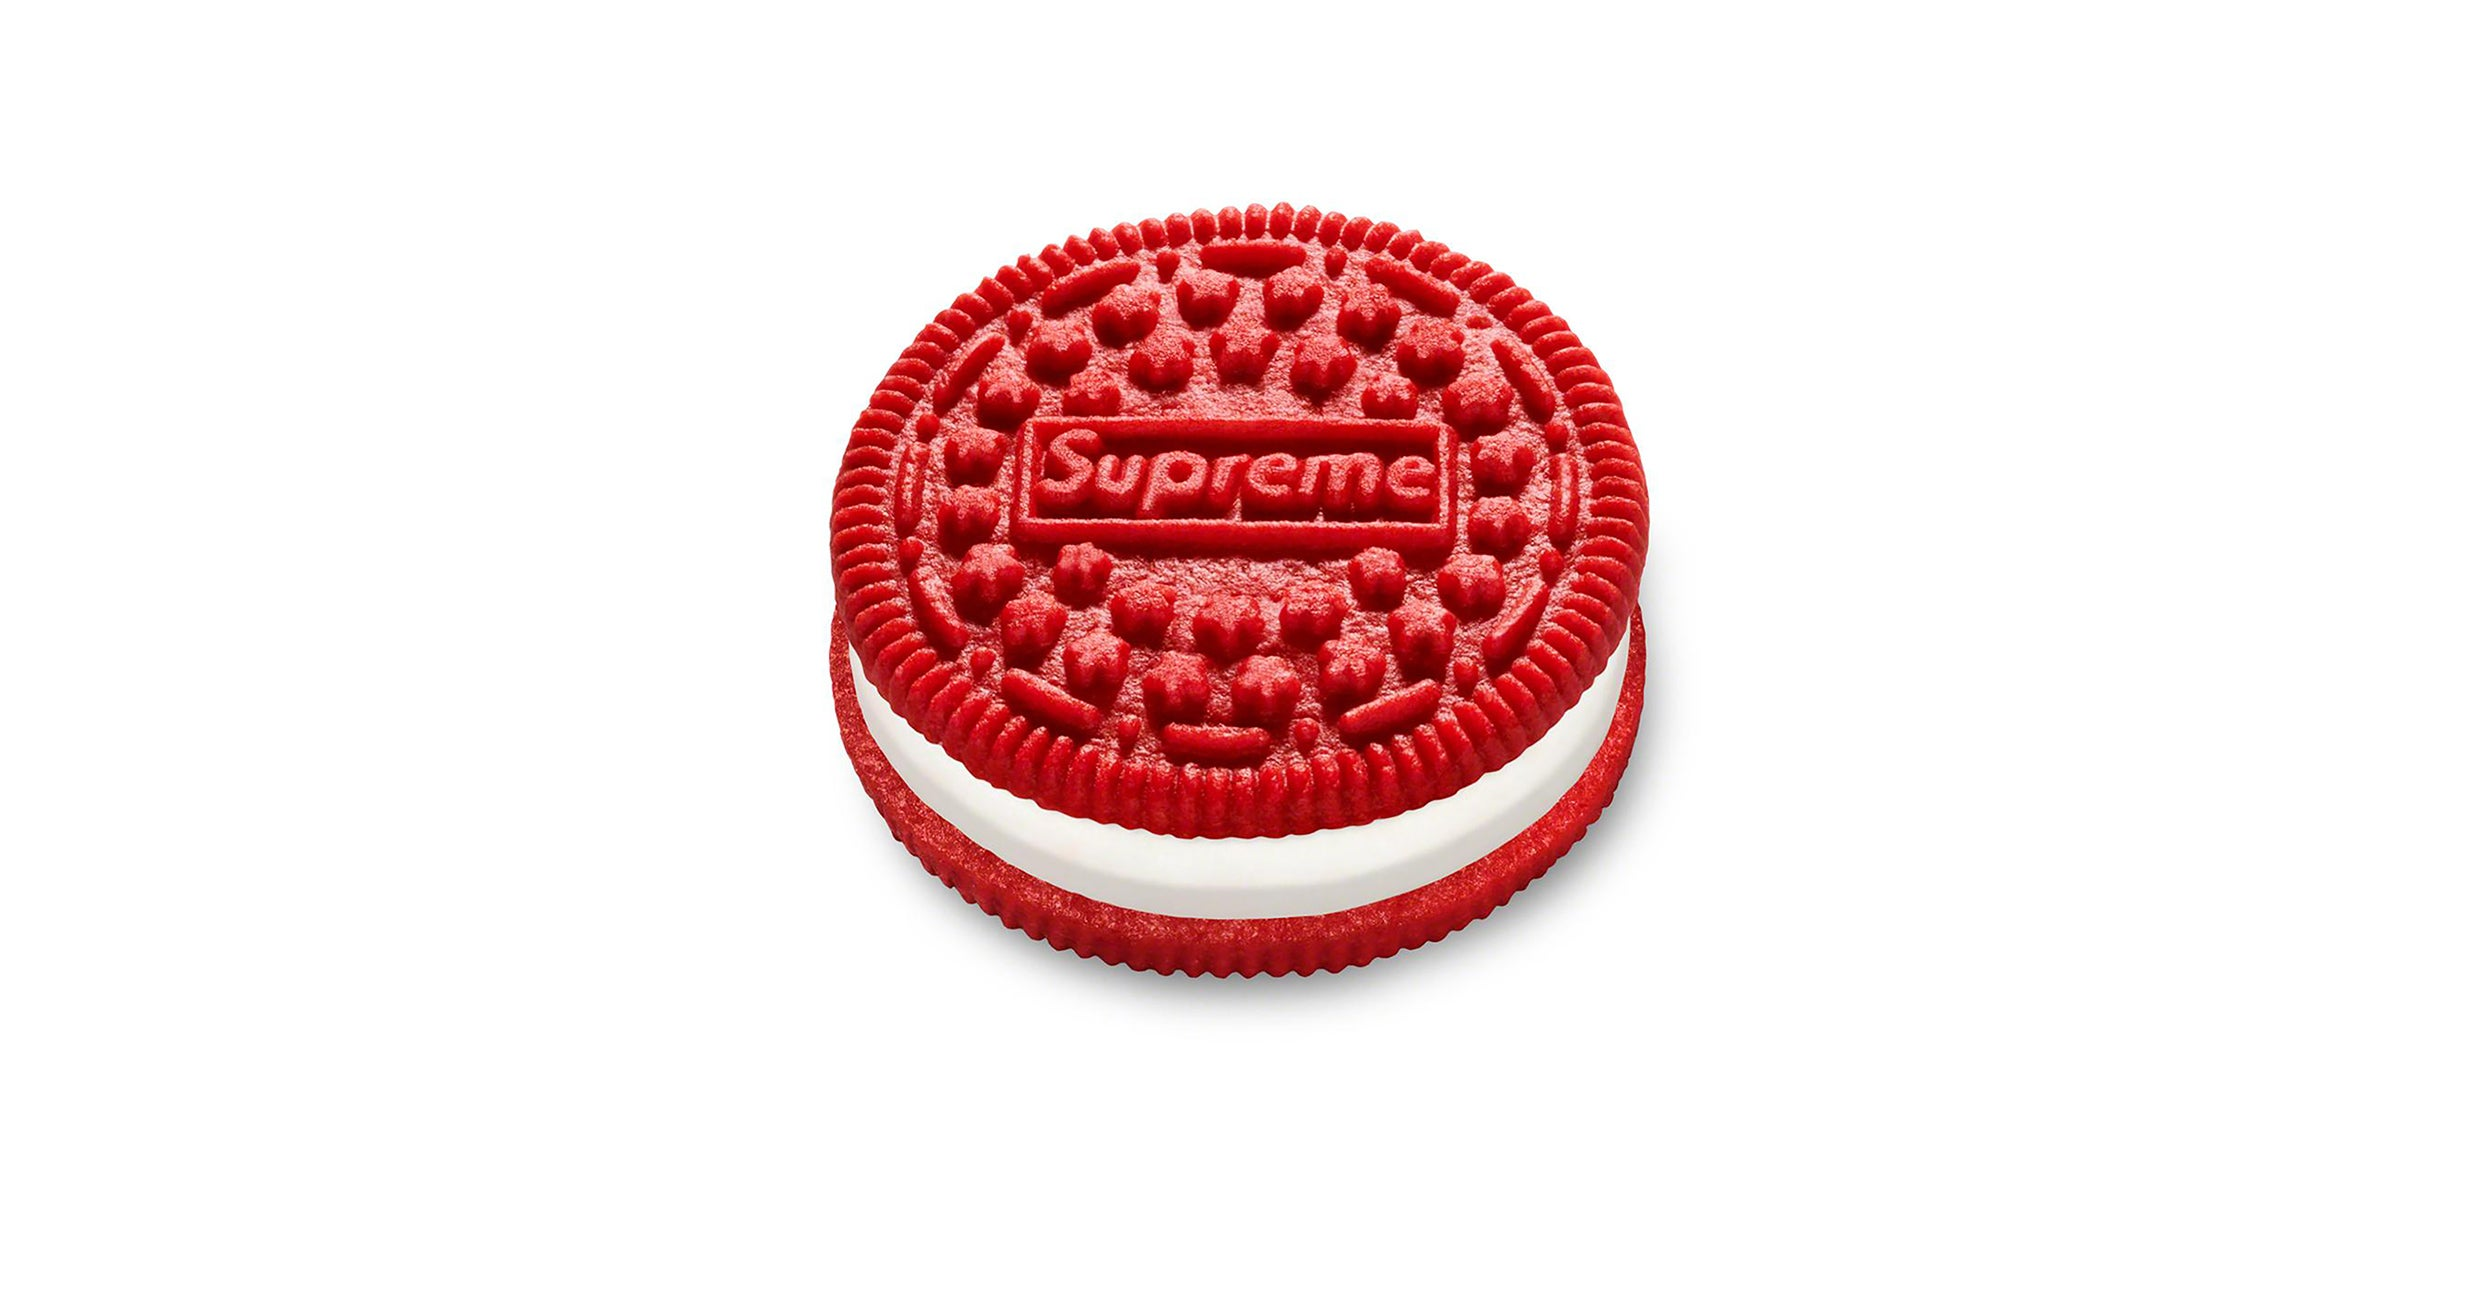 You Can Buy Supreme Brand Oreos For 17 000 Usd On Ebay